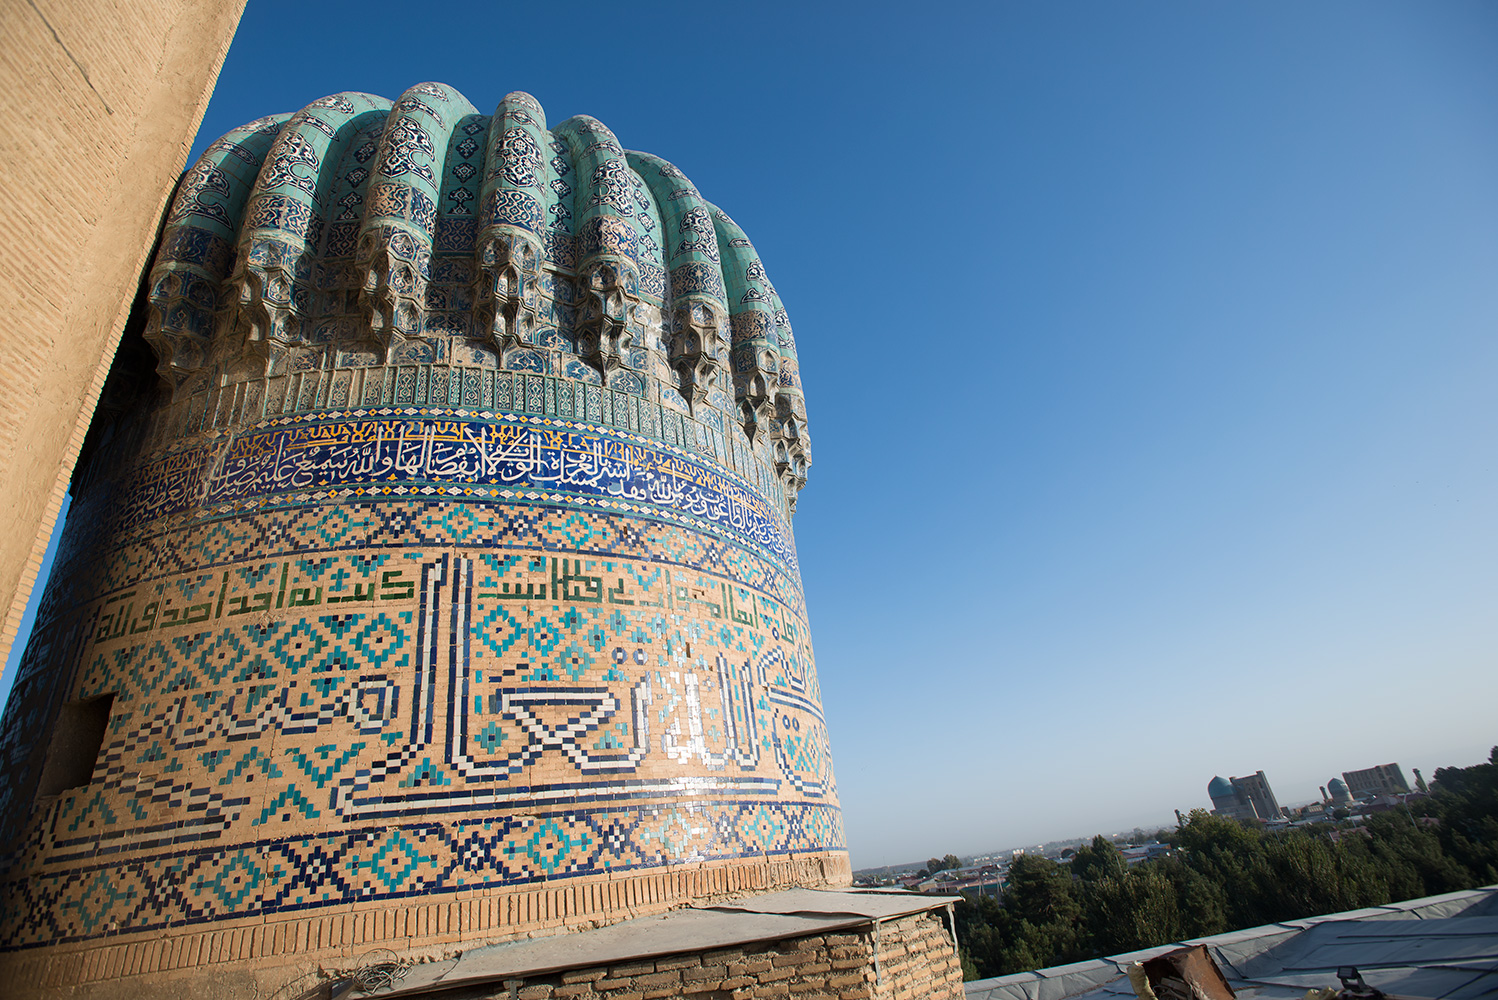 One of the domes, seen from the roof